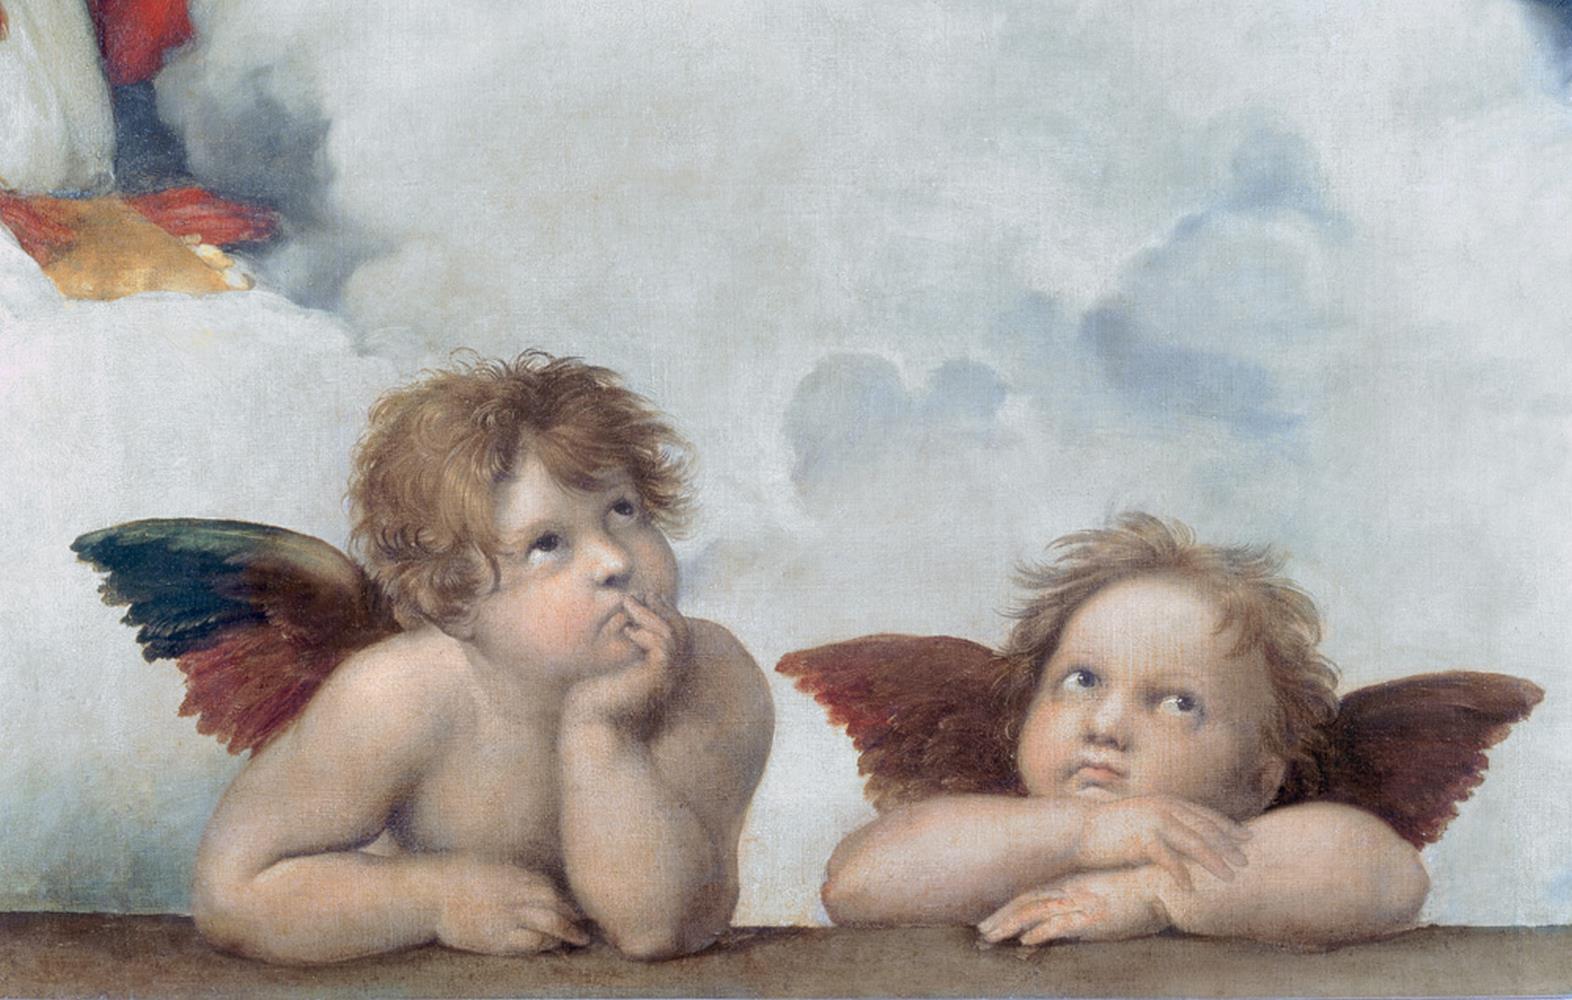 Tele decorative I due putti, La Cappella Sistina, Raffaello Sanzio MyCollection